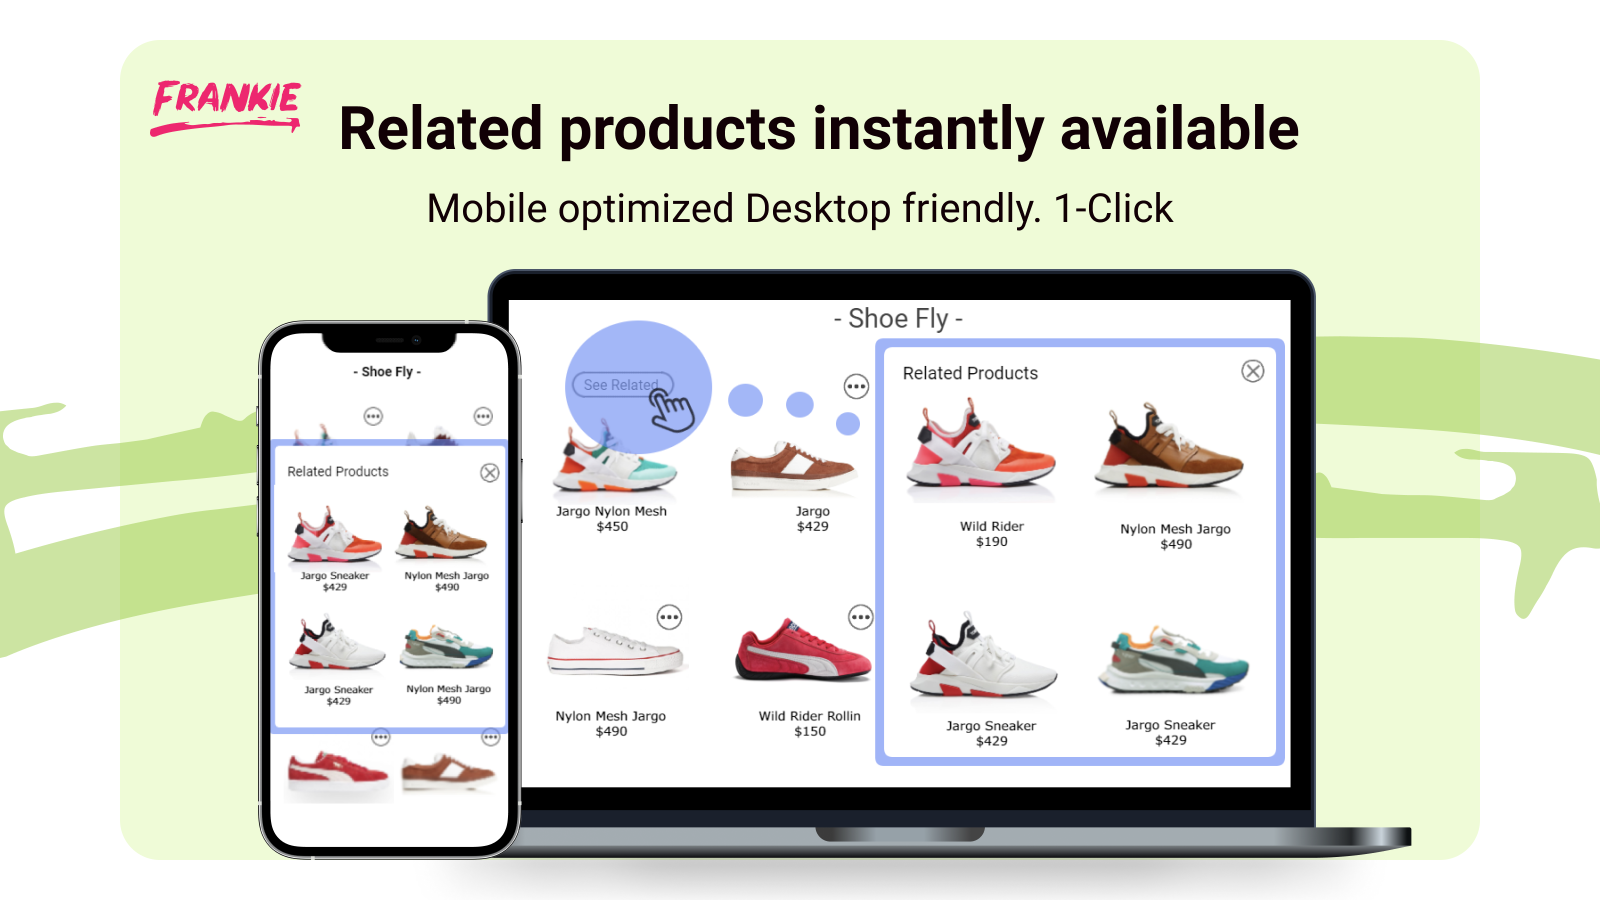 Inline uninterrupted shopping flow displaying engaging content